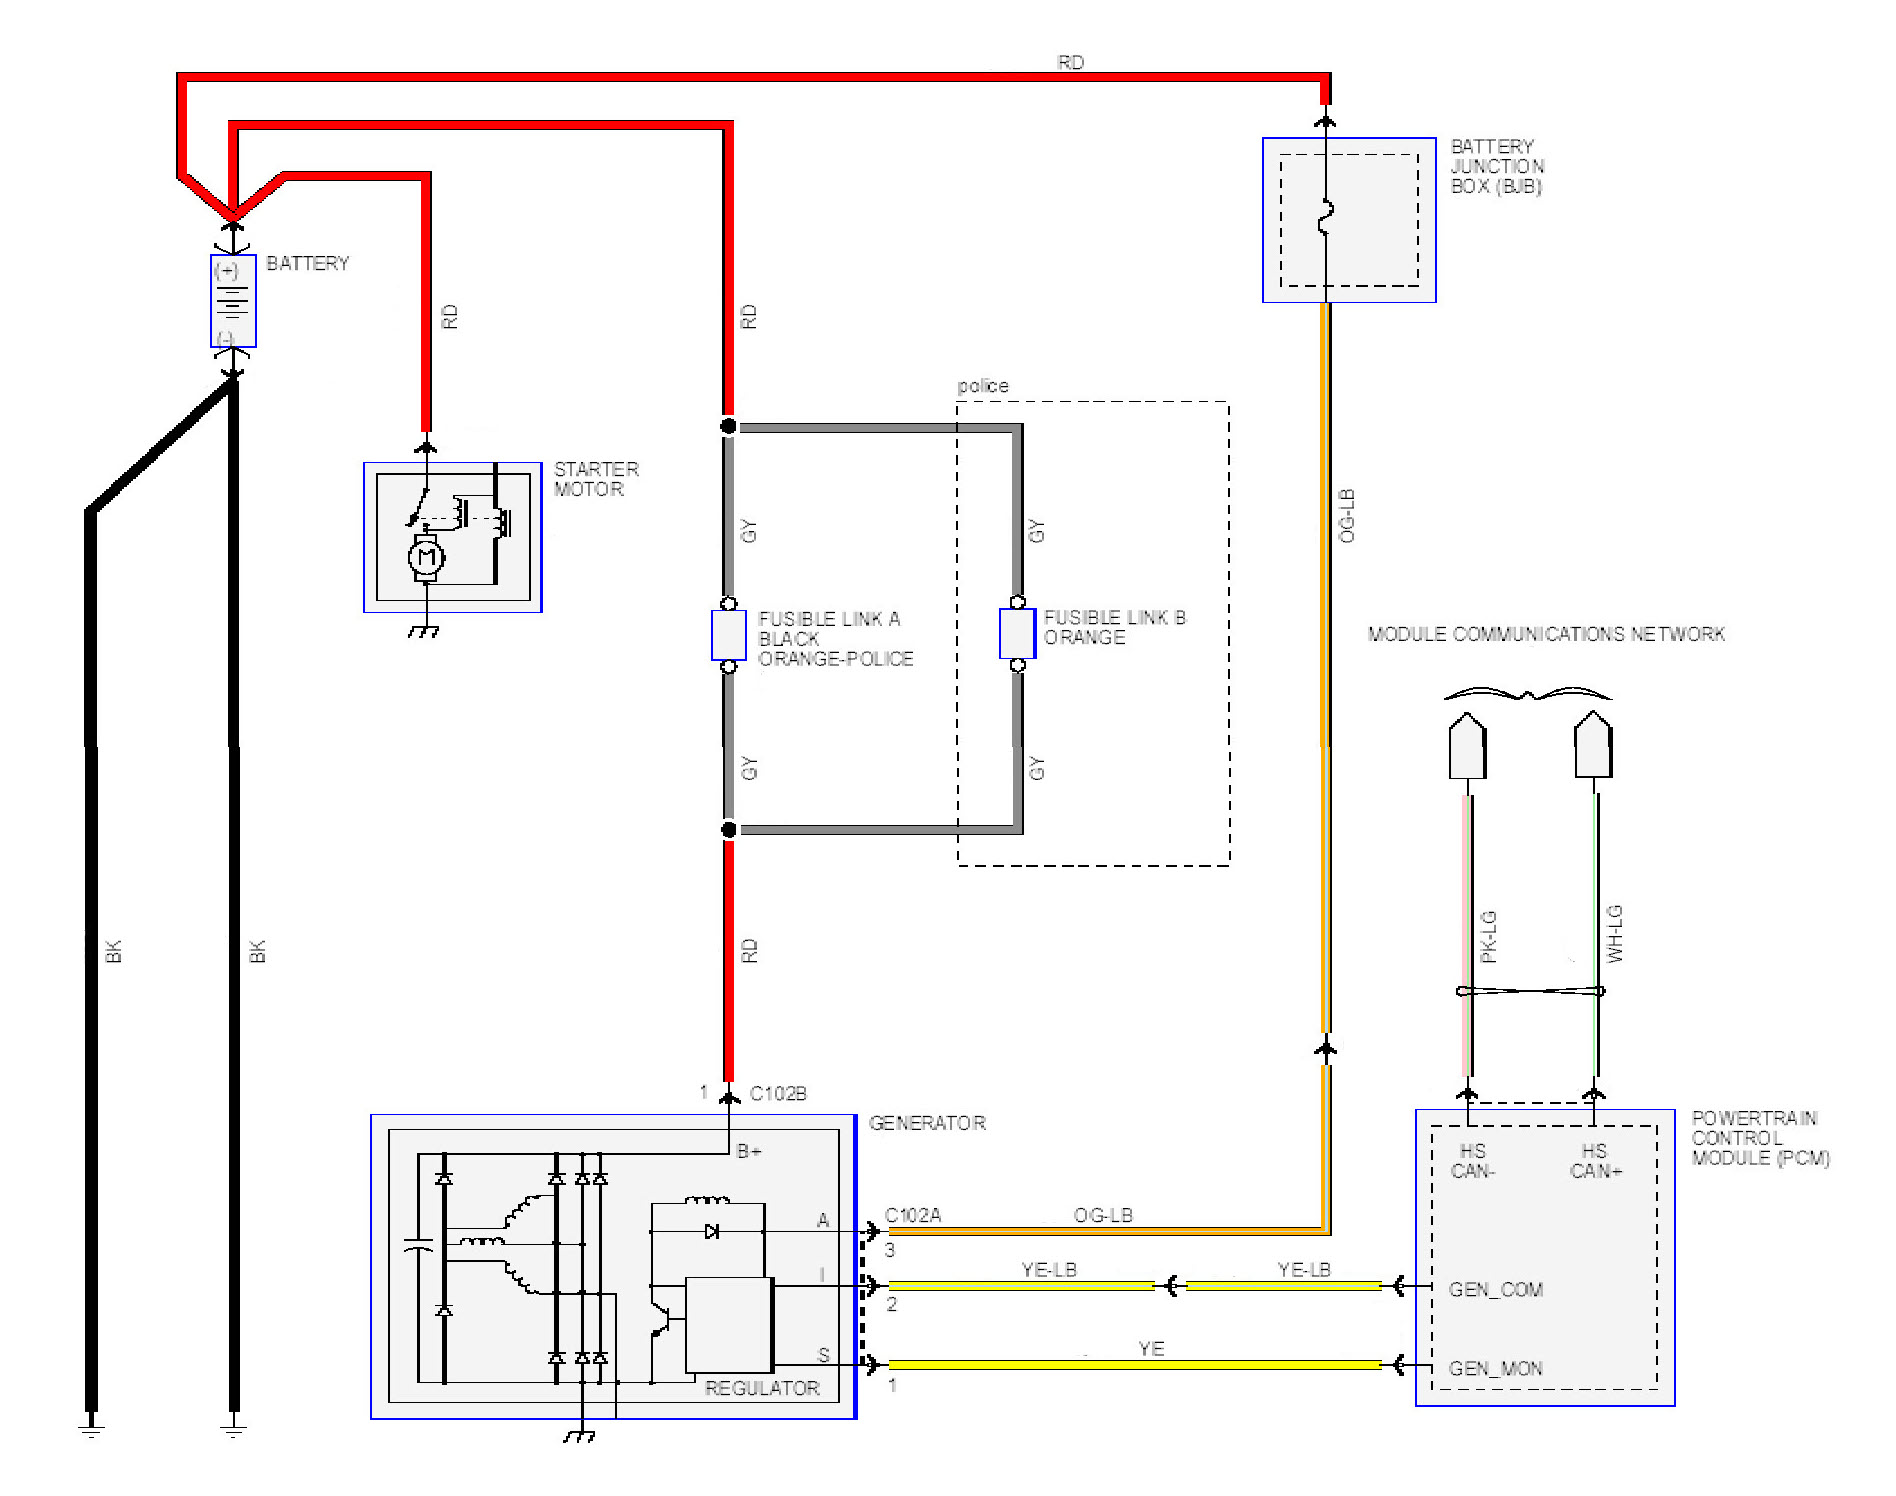 10crownviccharge ford crown victoria alternator wiring diagrams 1999 F150 Radio Wiring Diagram at sewacar.co